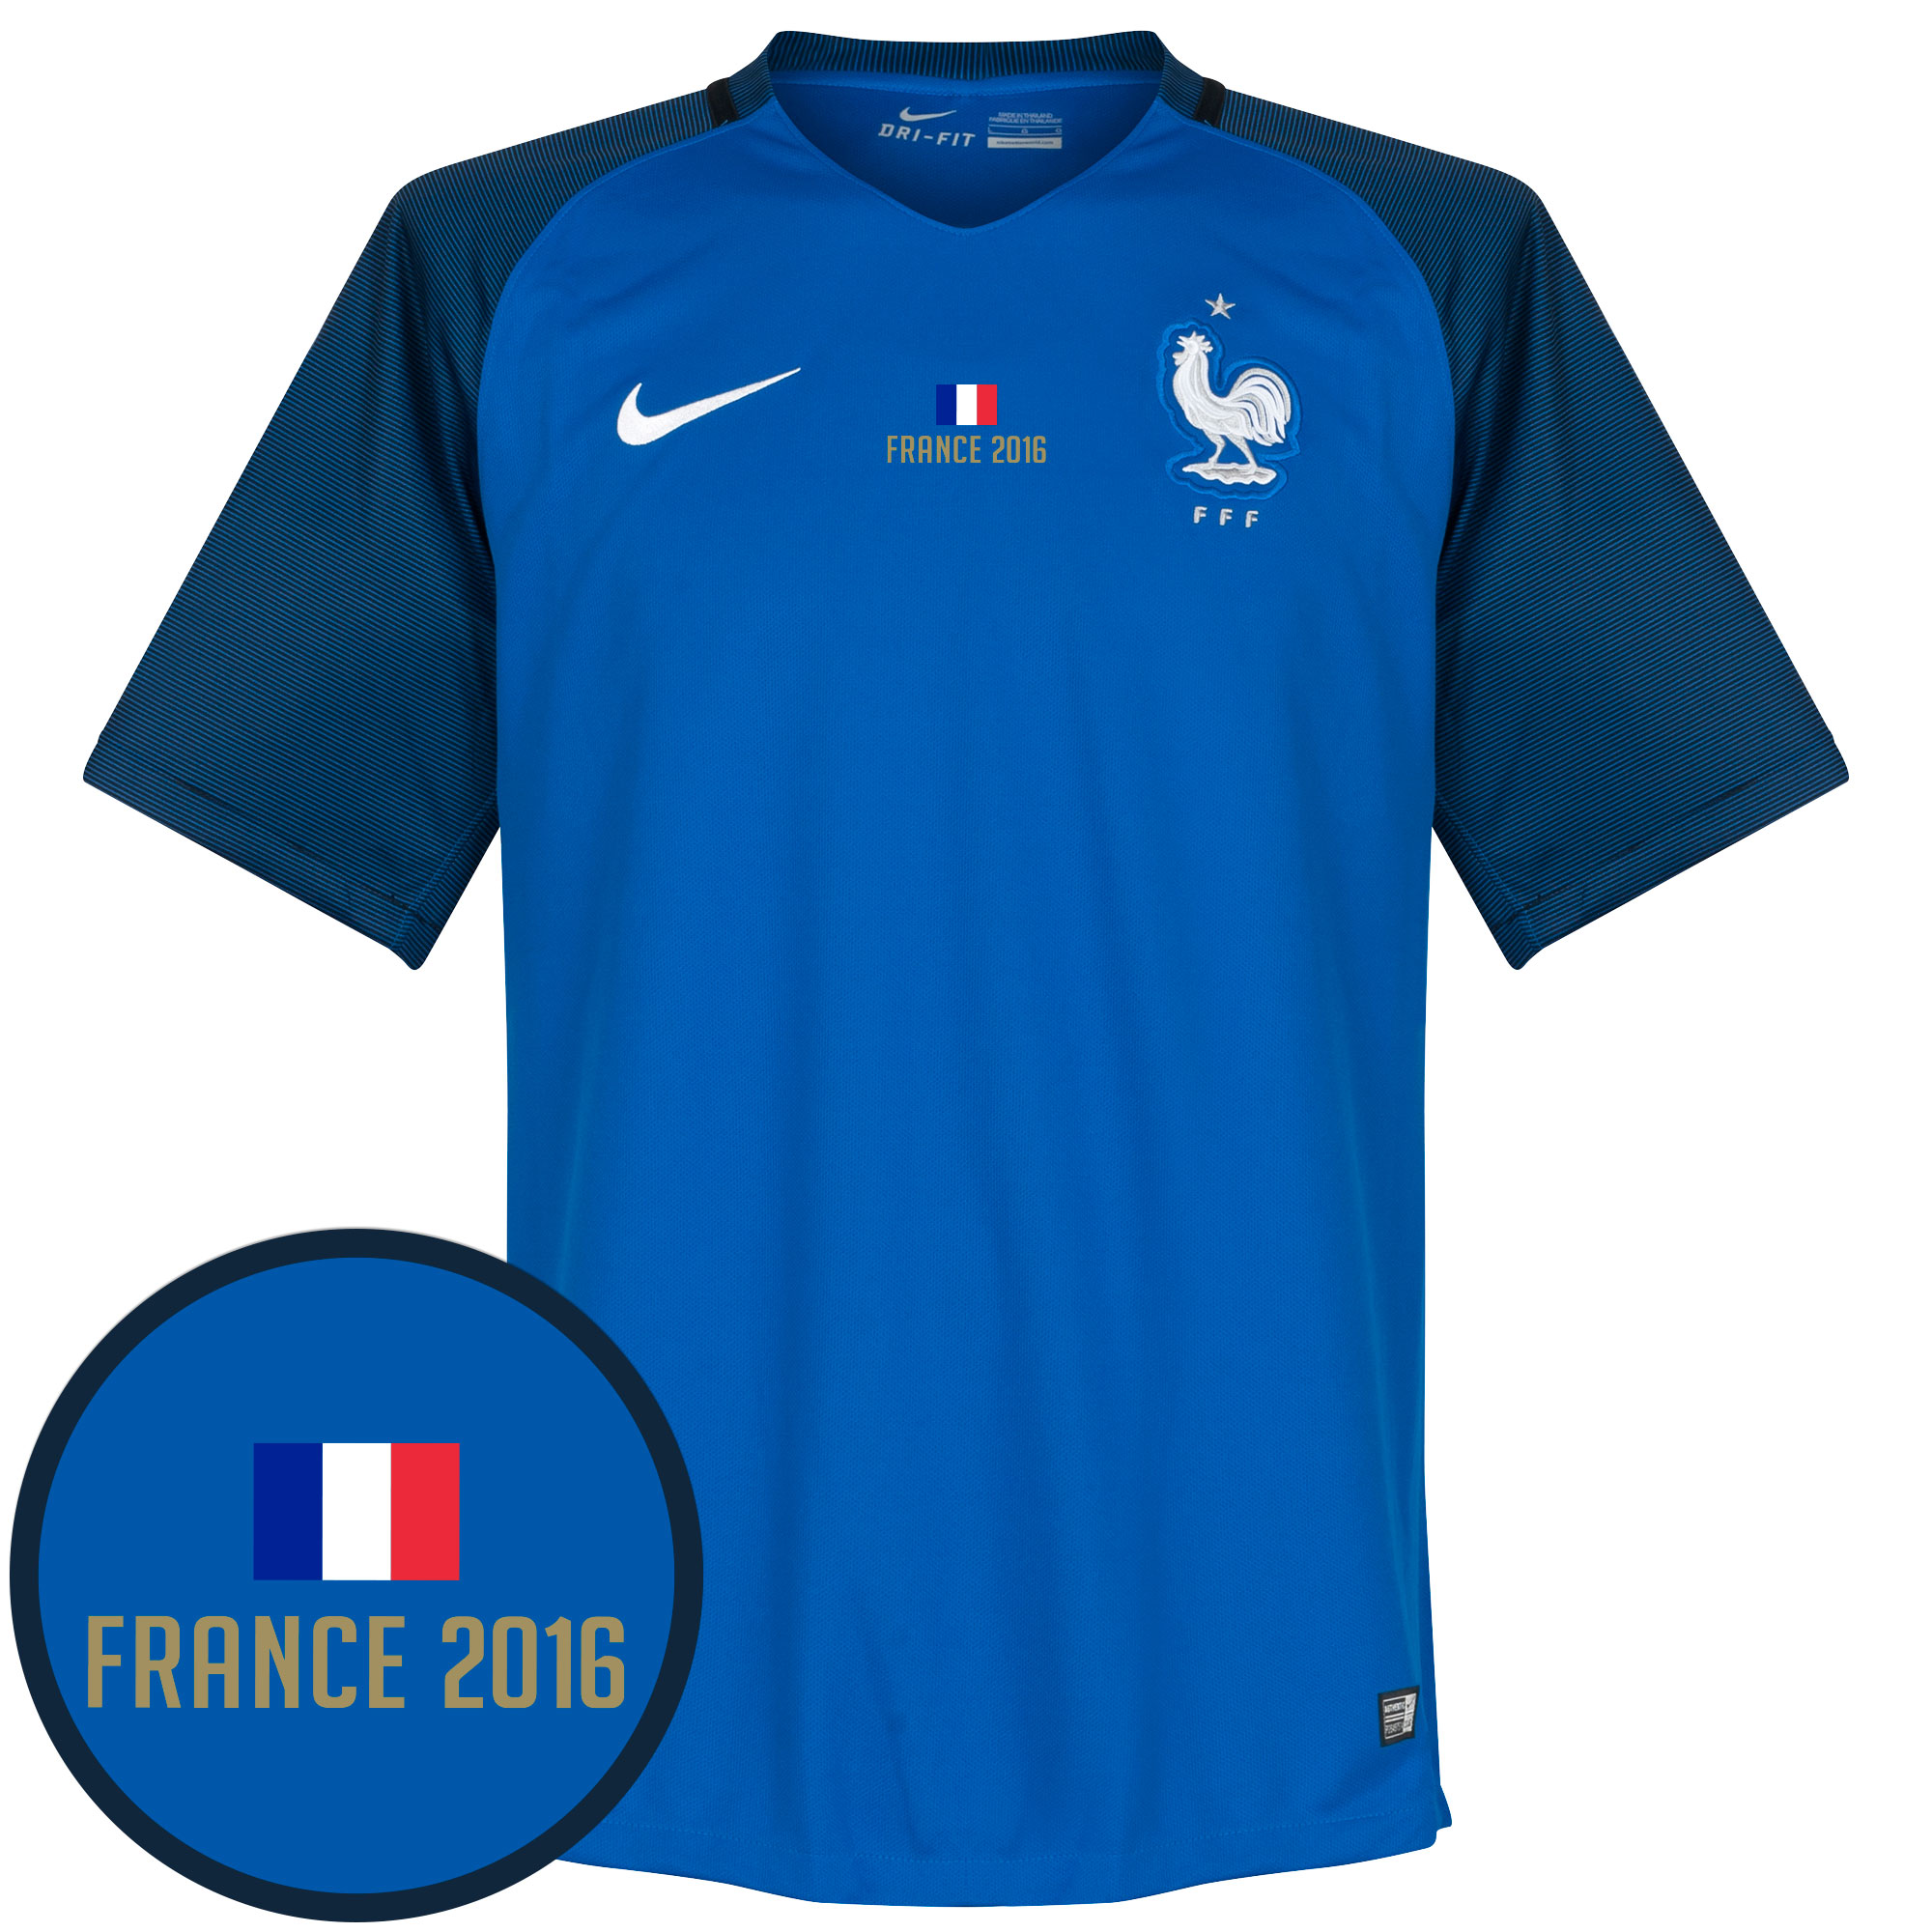 France Home Jersey 2016 / 2017 + France 2016 Transfer - XL